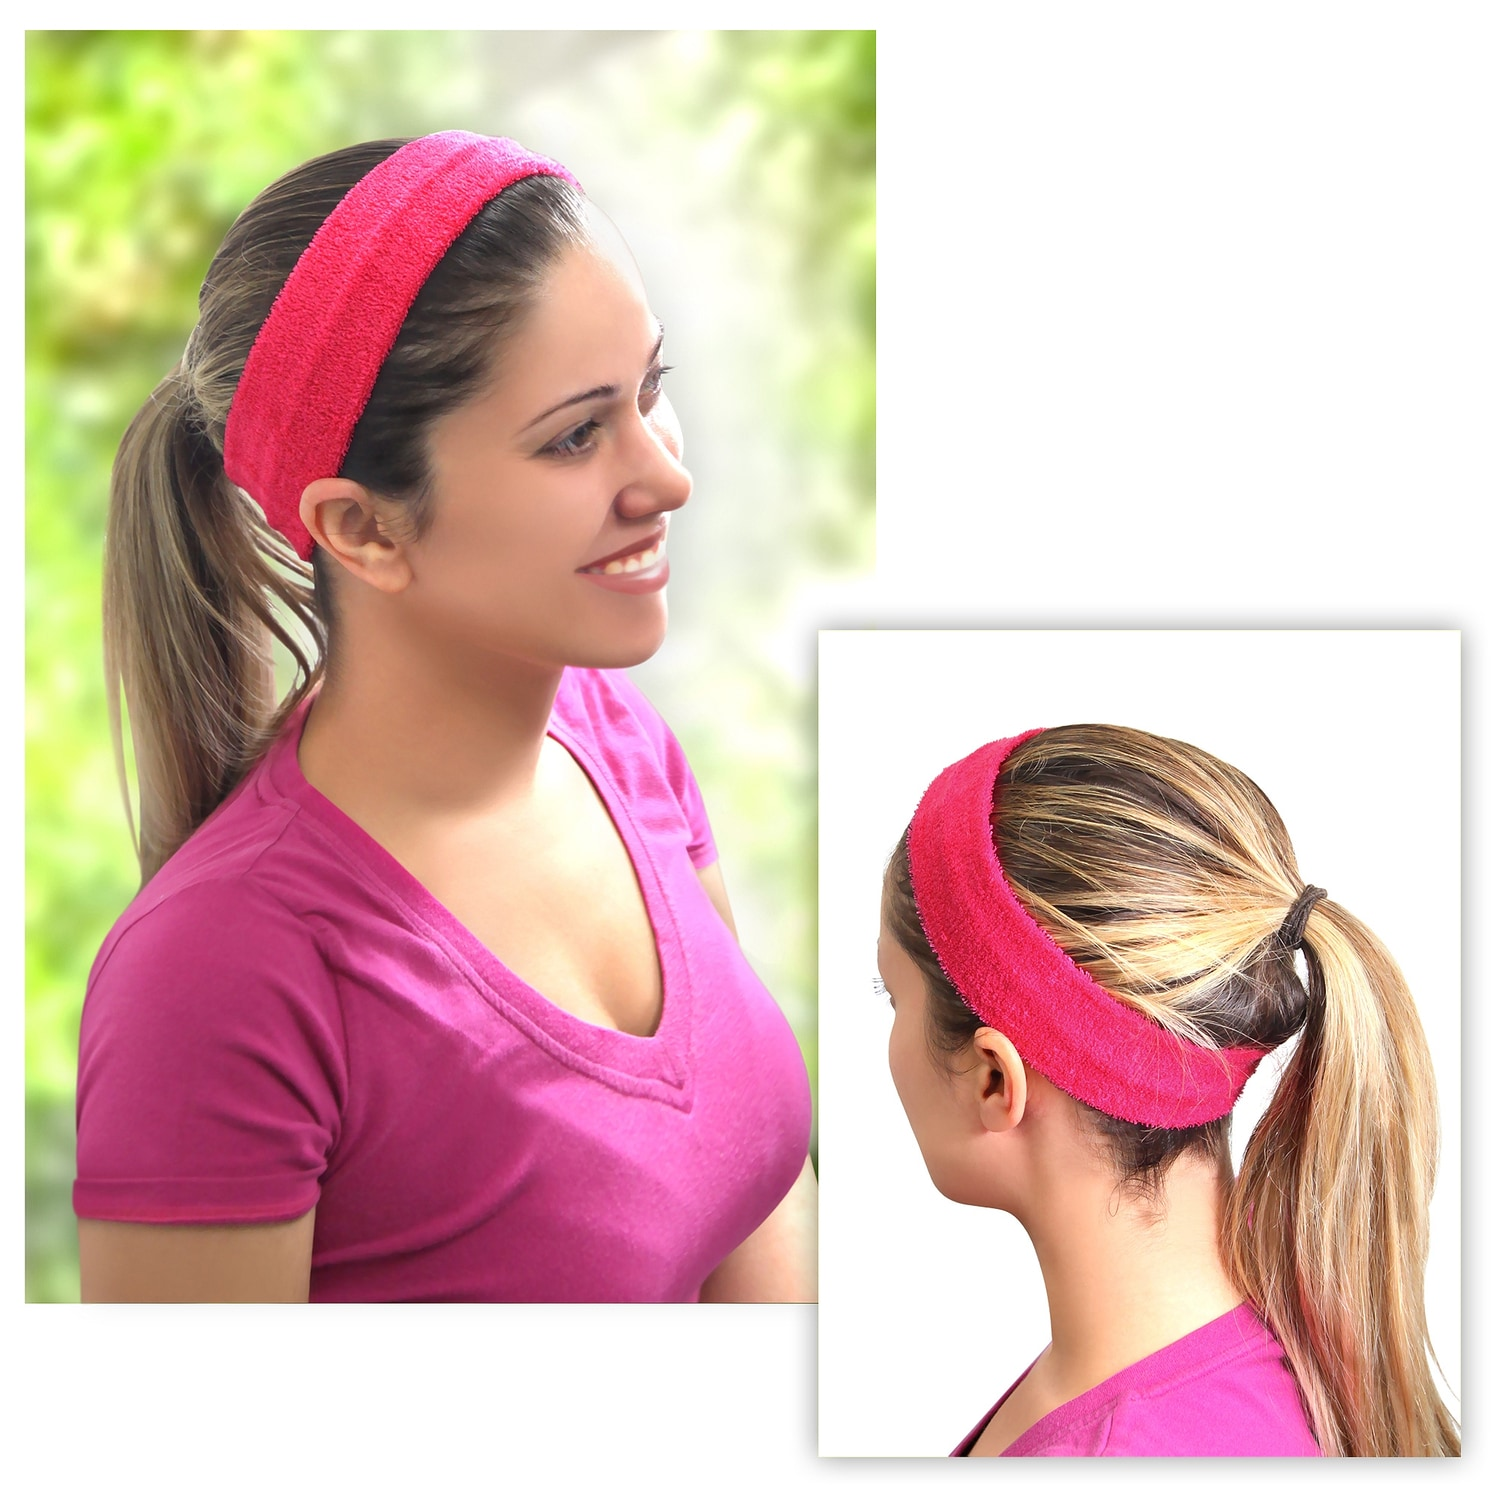 Zodaca Women Fashion Yoga Sports Elastic Cotton Hair Band Headband in  Assorted Colors 83081e55078